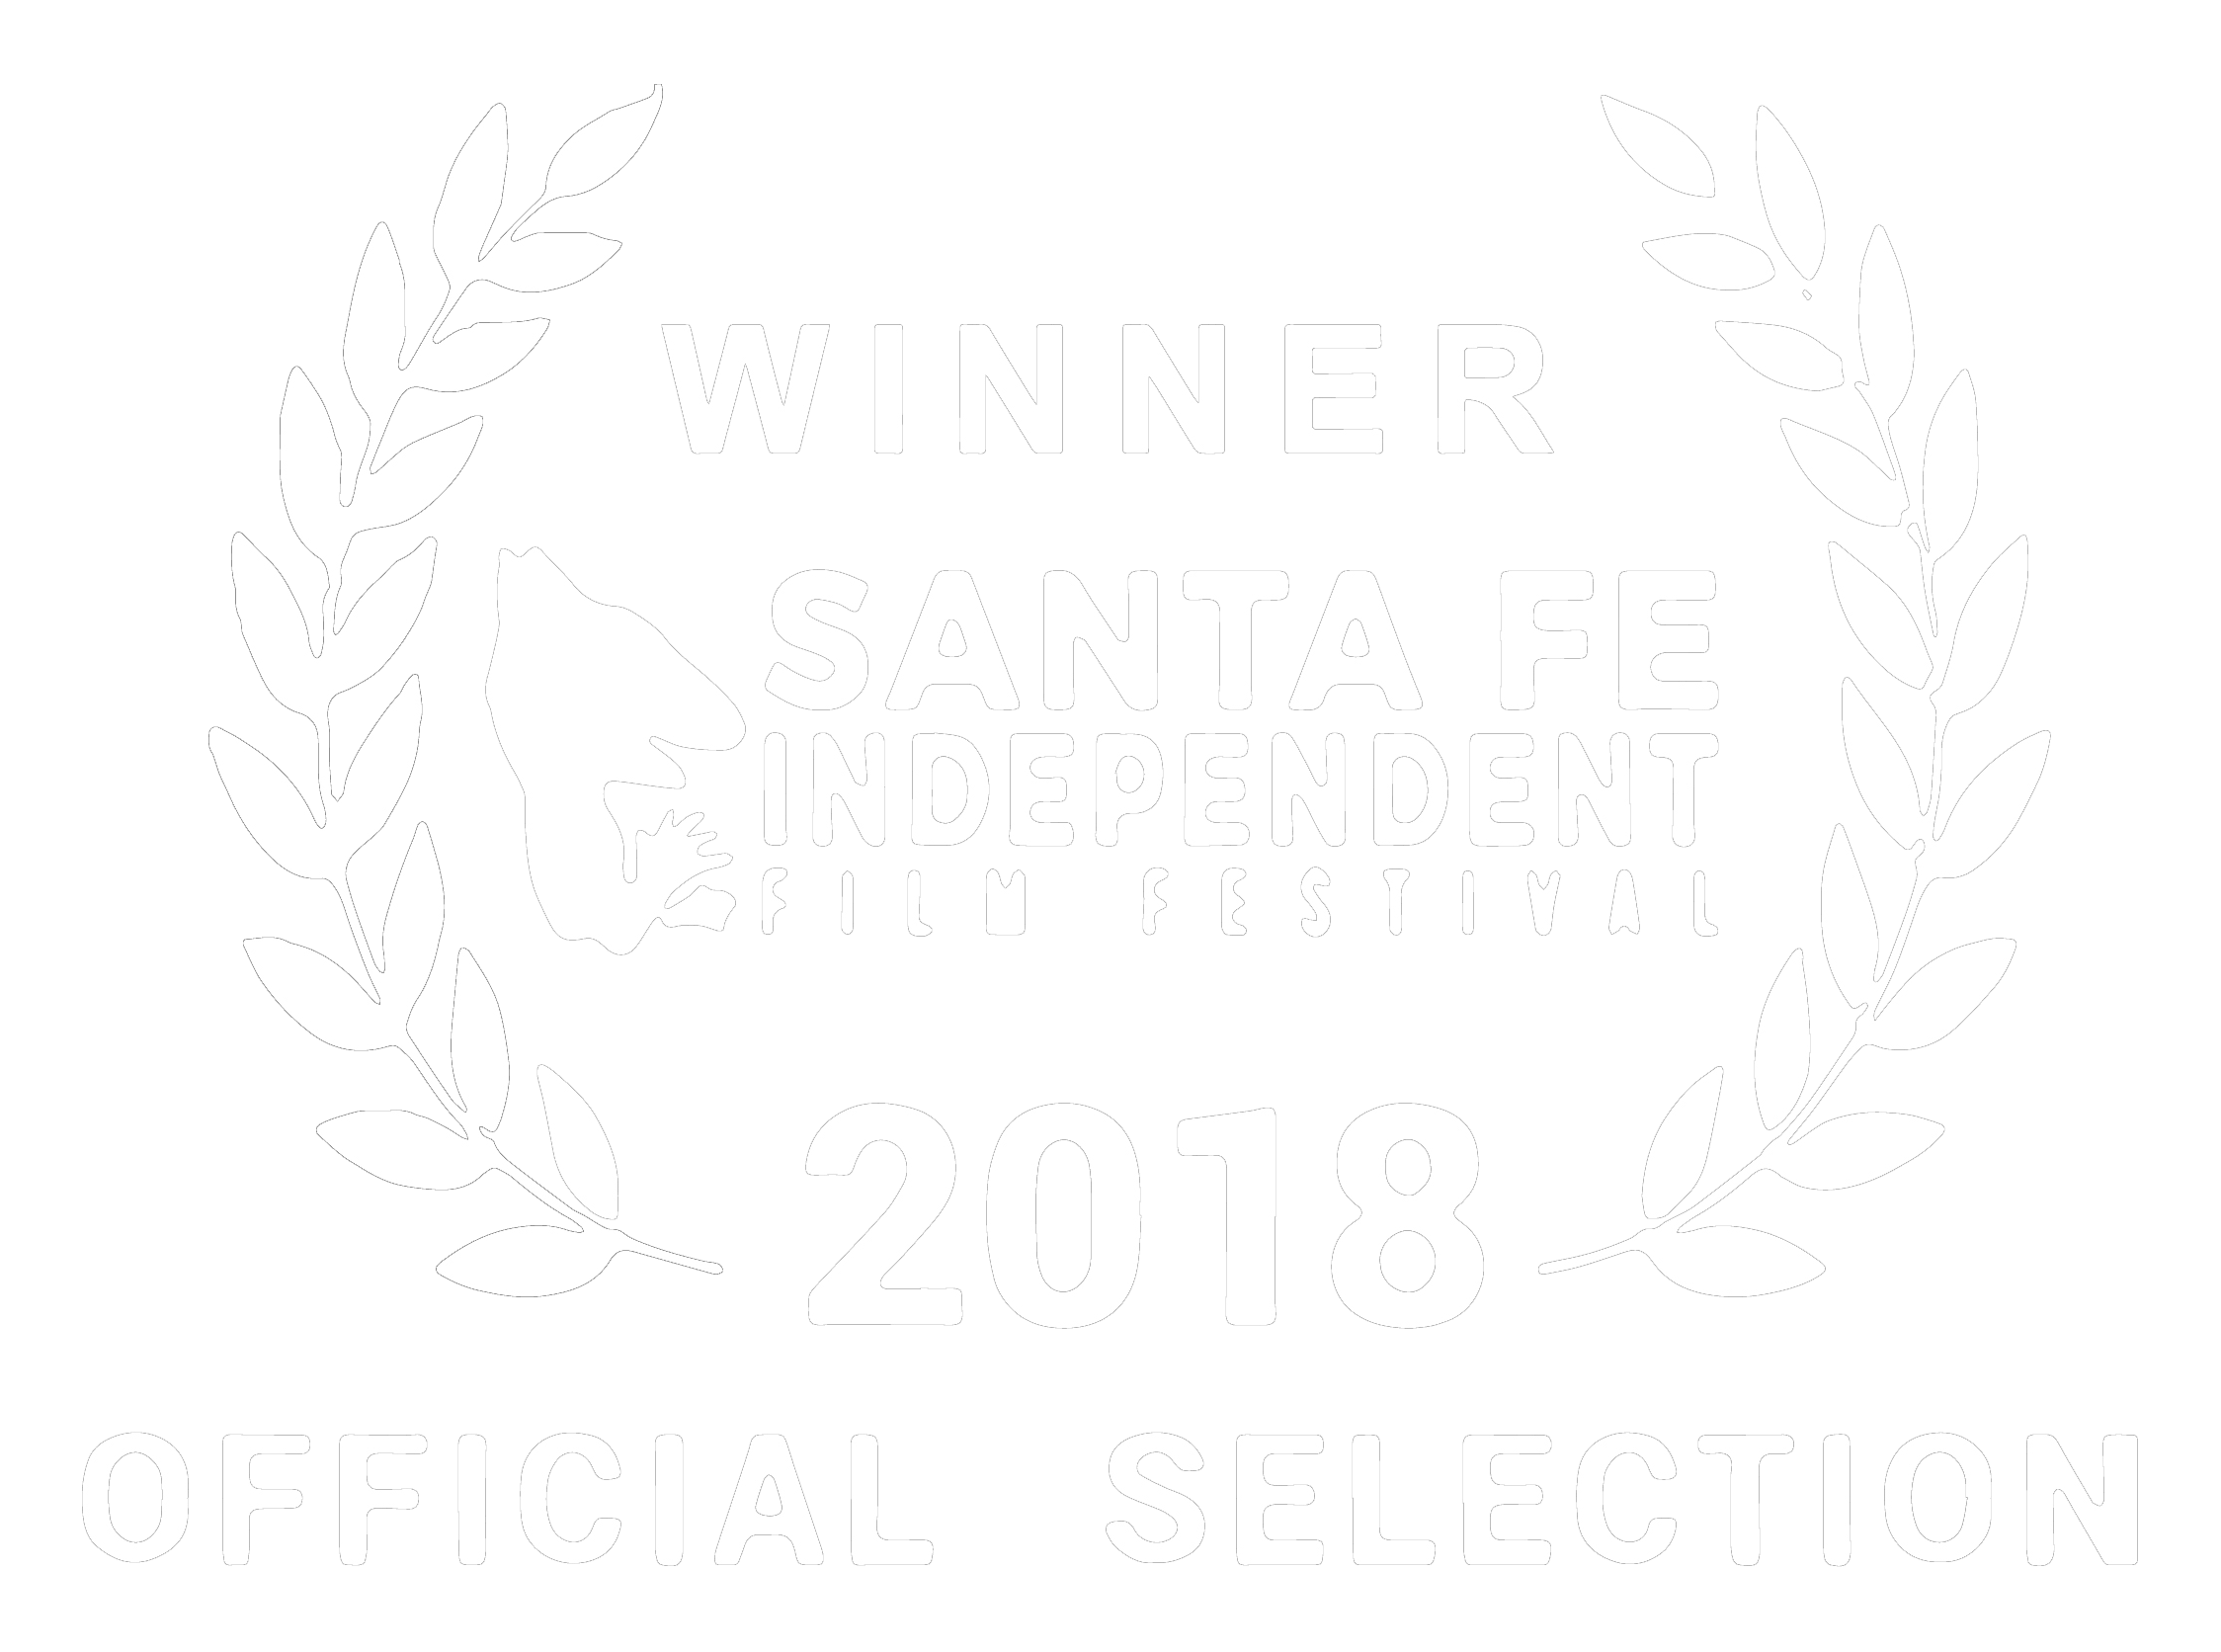 Hiro's Table Wins Best New Mexico Documentary at the Santa Fe Film Festival